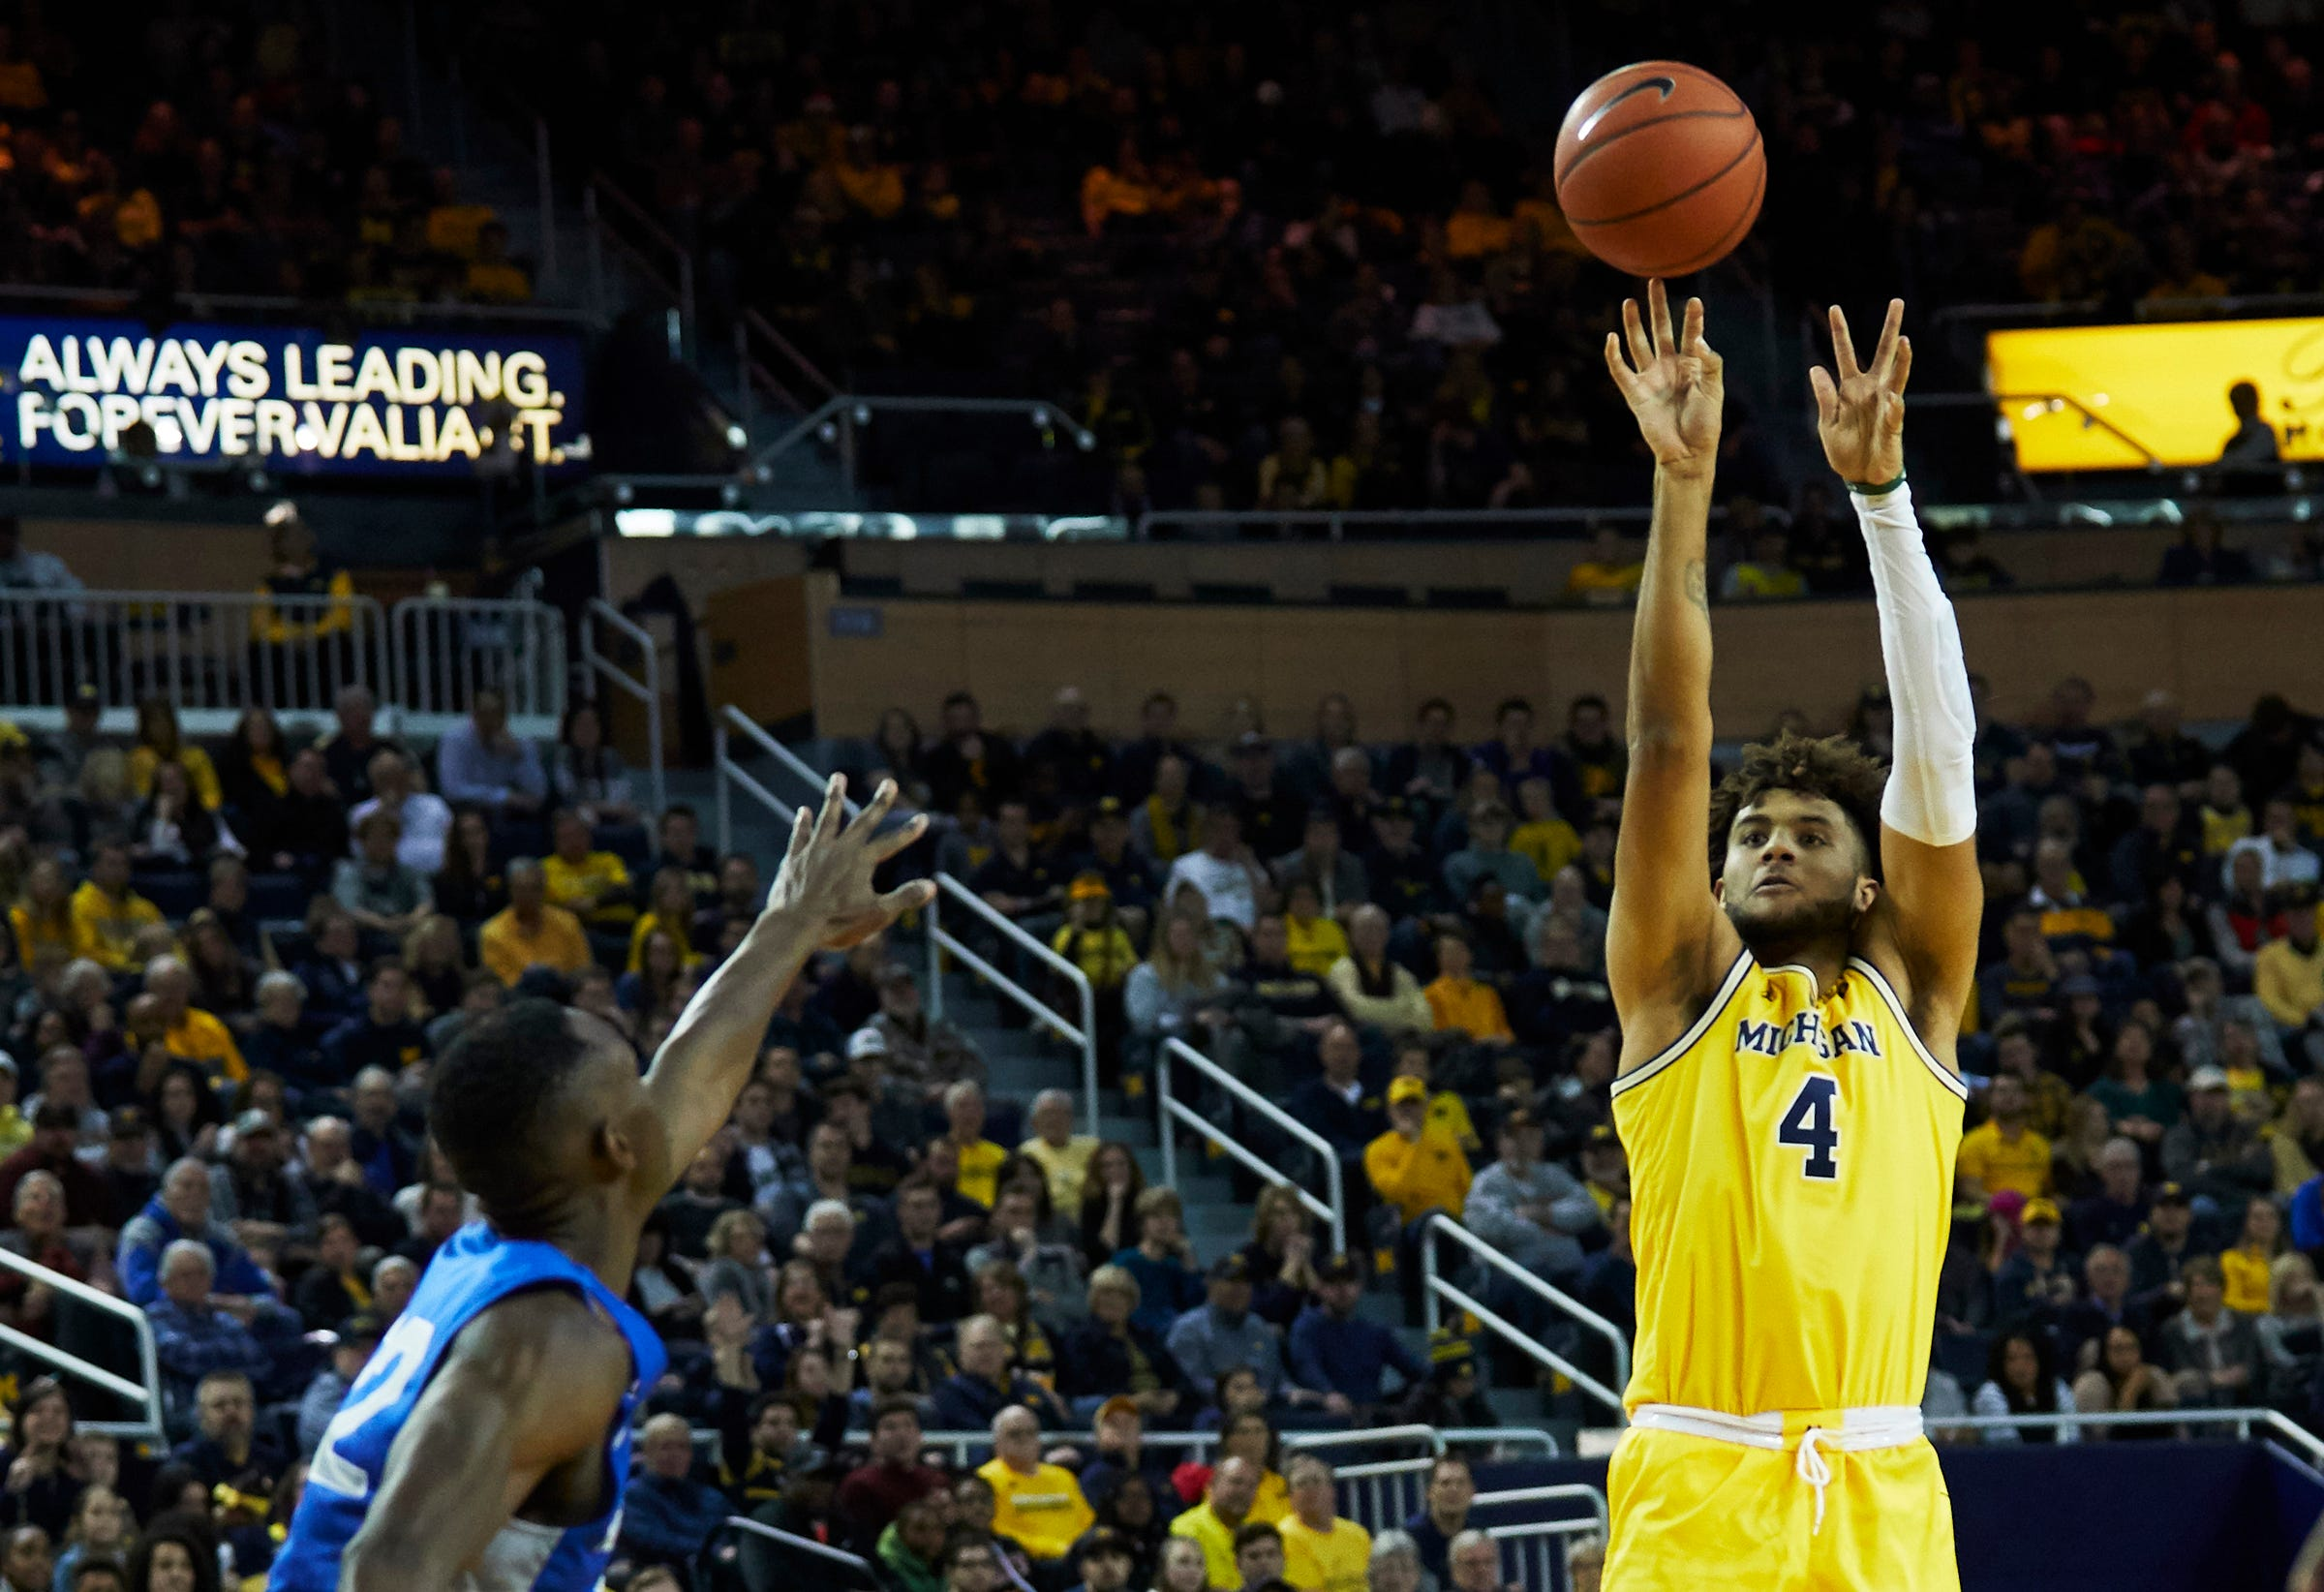 Ncaa Basketball Air Force At Michigan